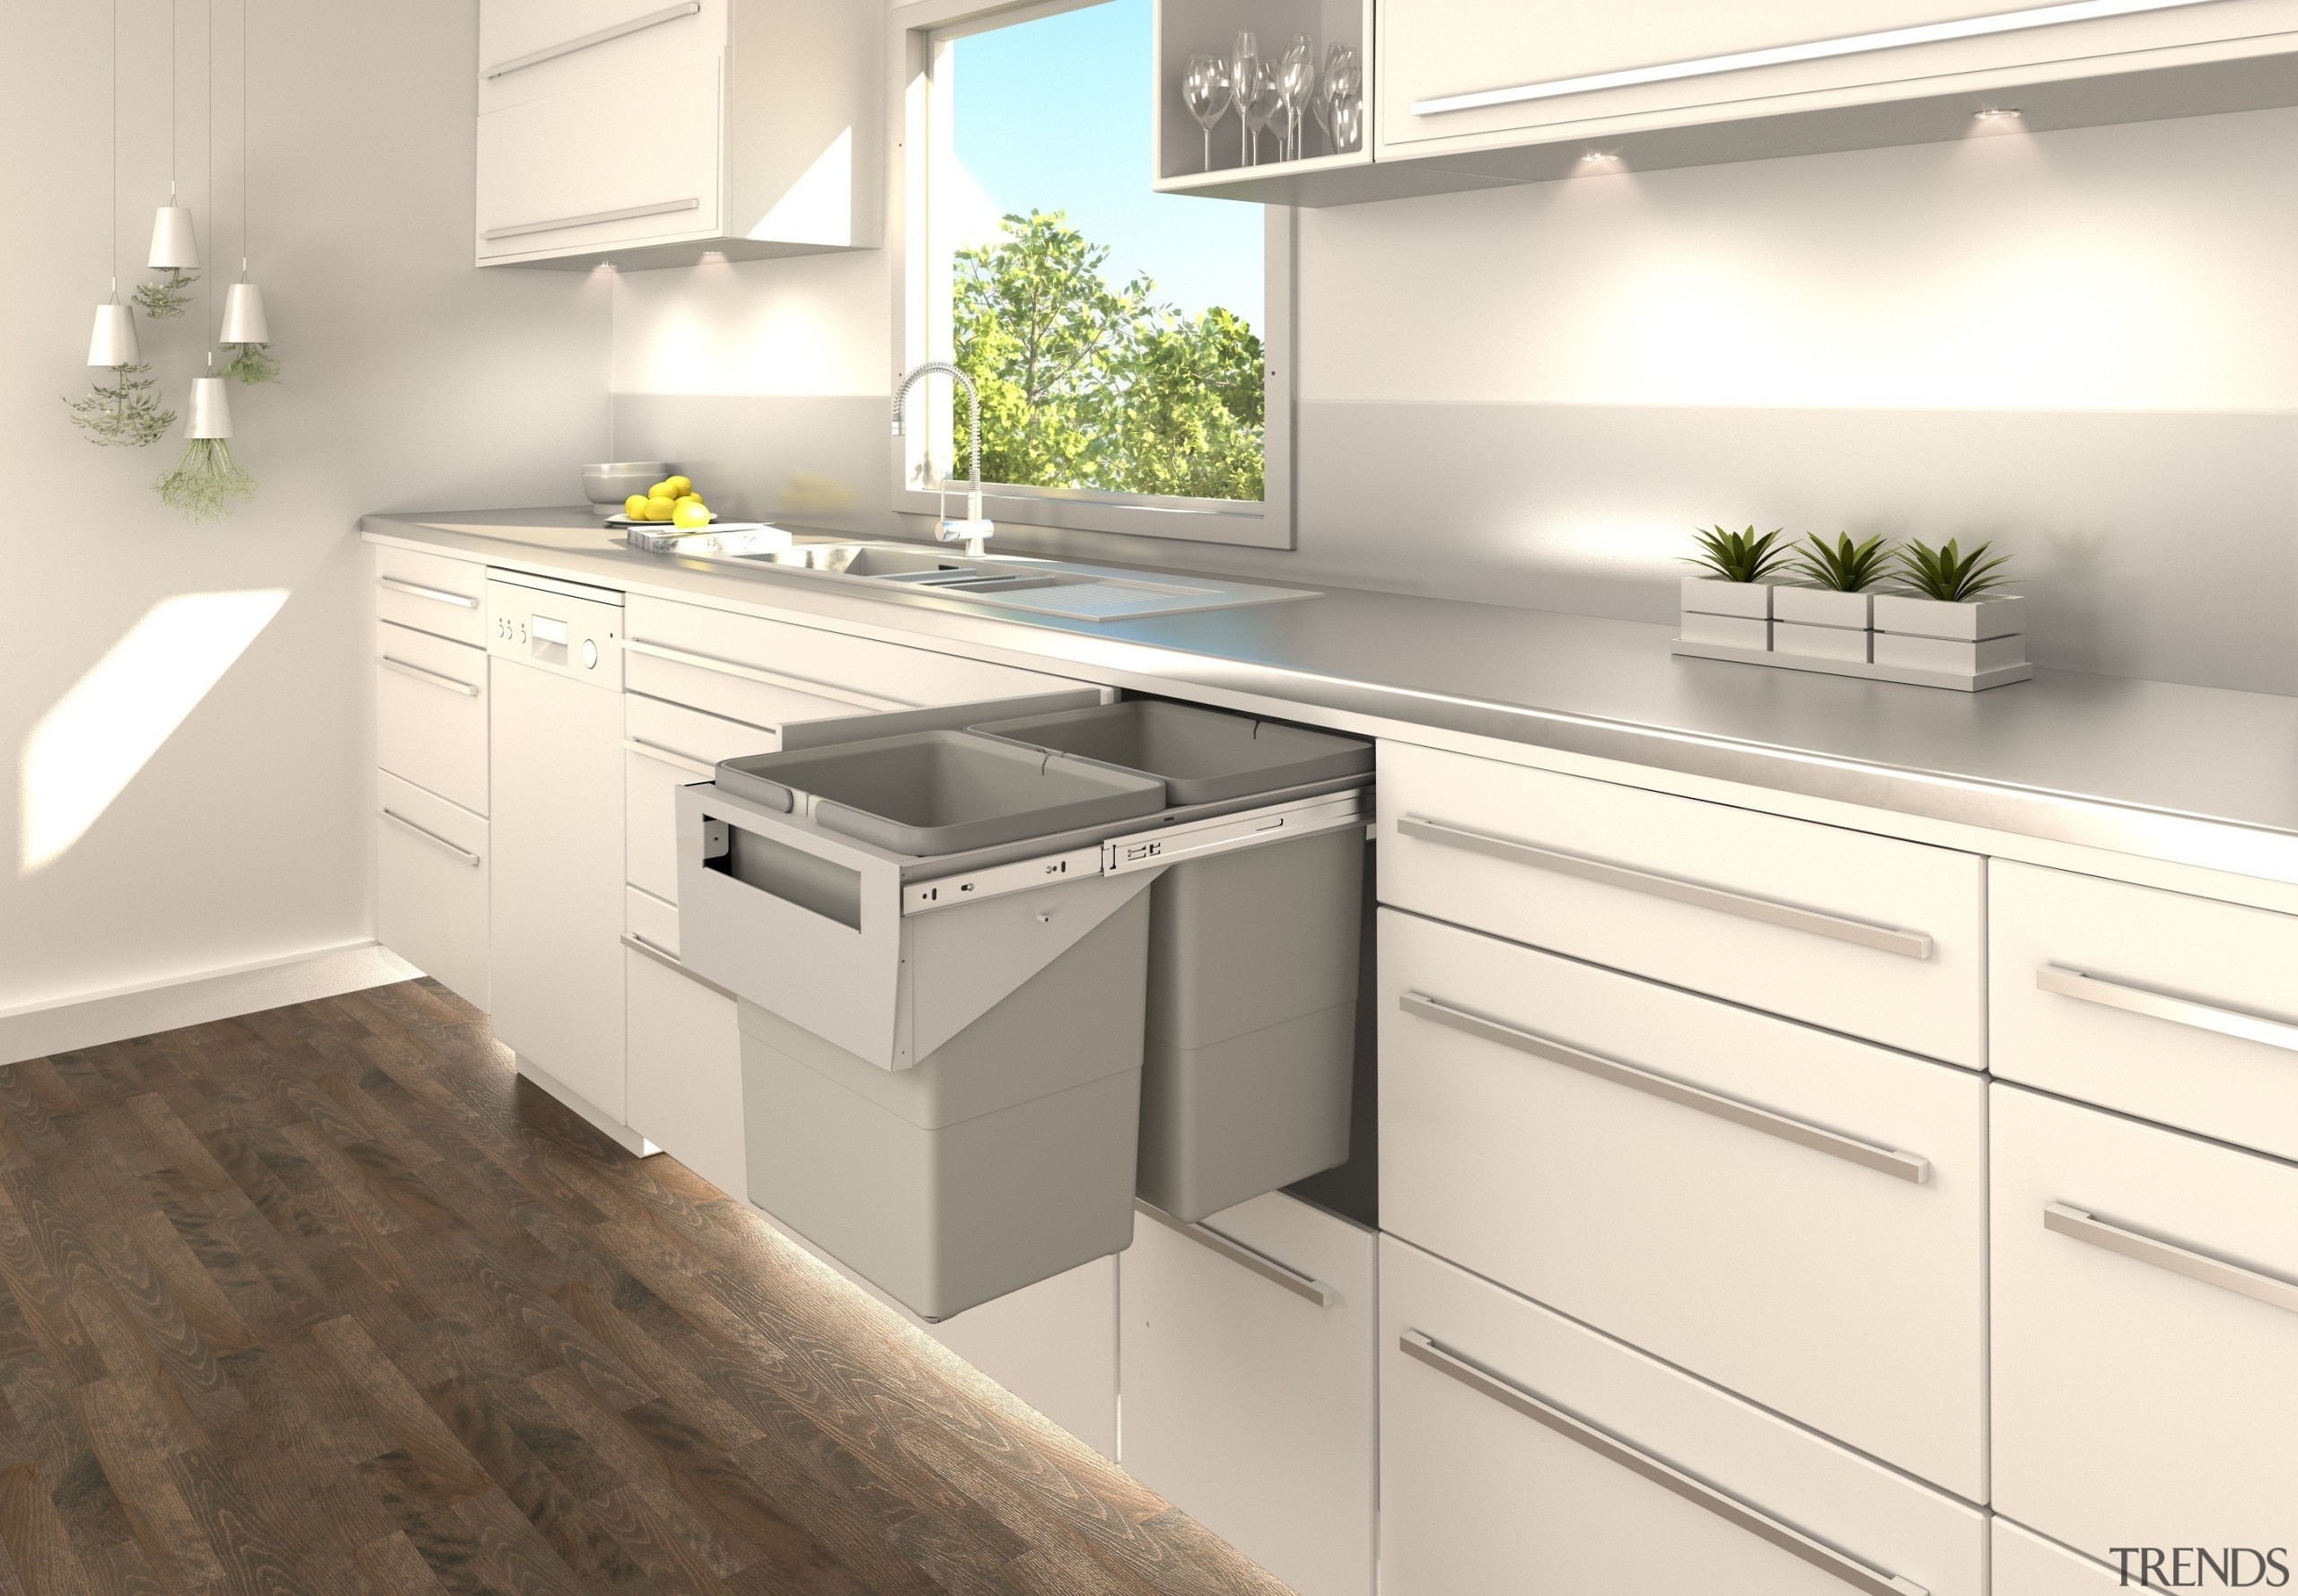 Our top selling pull out kitchen bin range, cabinetry, countertop, cuisine classique, floor, interior design, kitchen, white